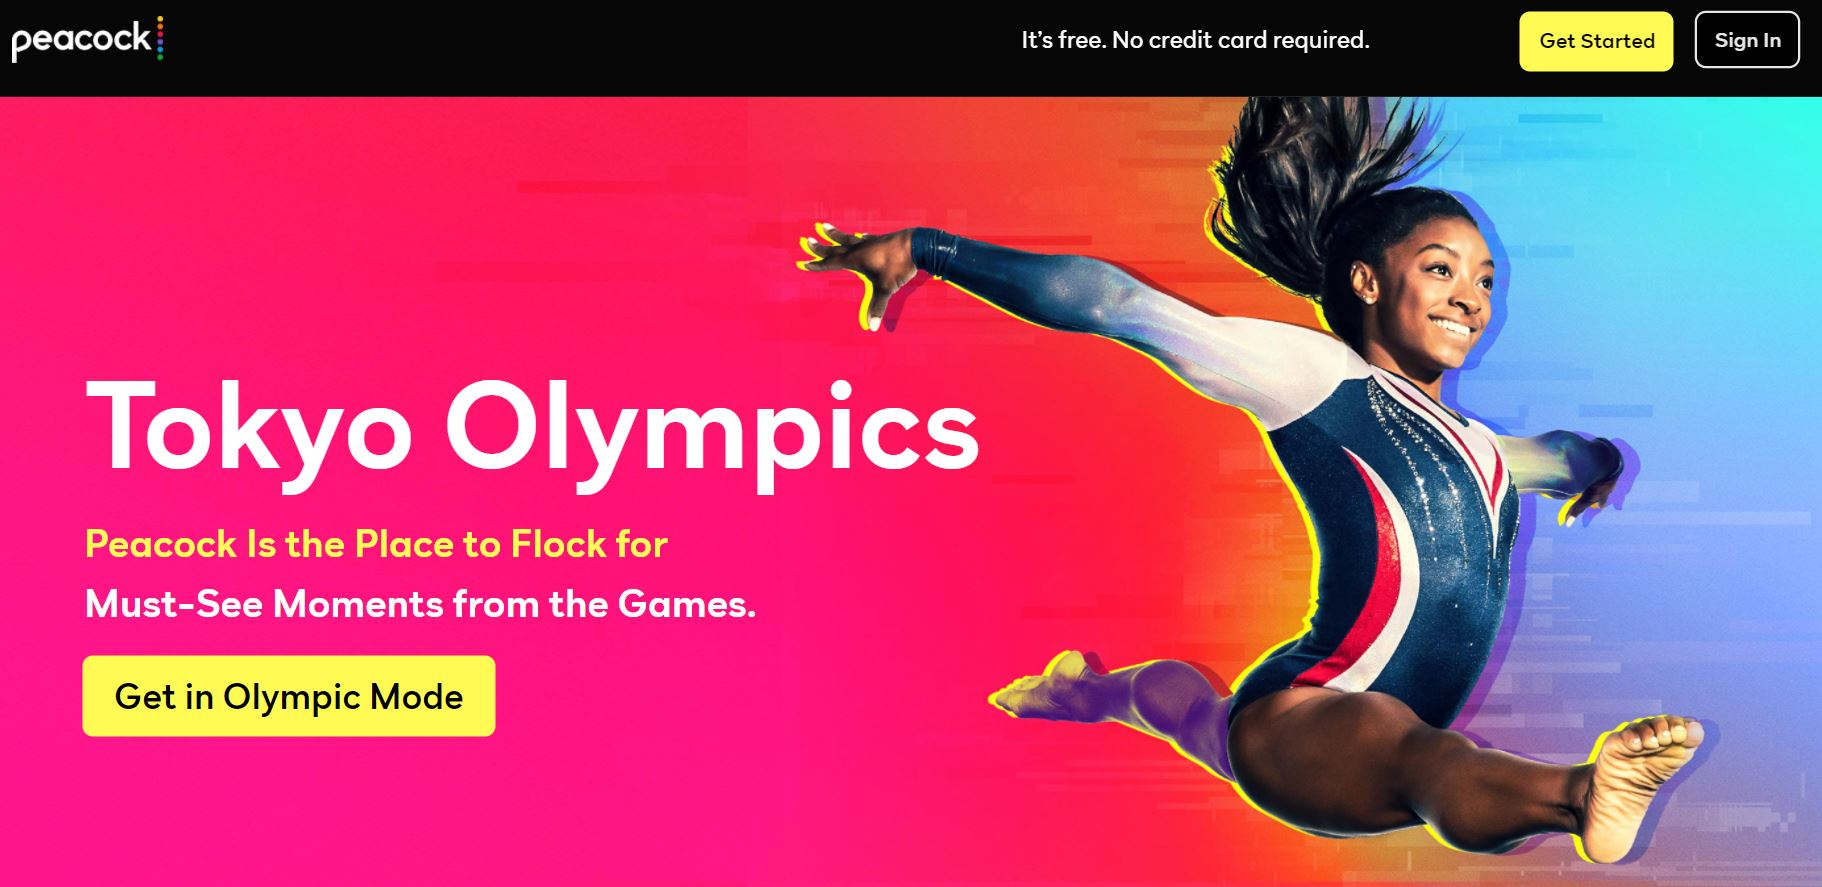 How to Watch the 2021 Olympics Opening Ceremonies Live Without Cable